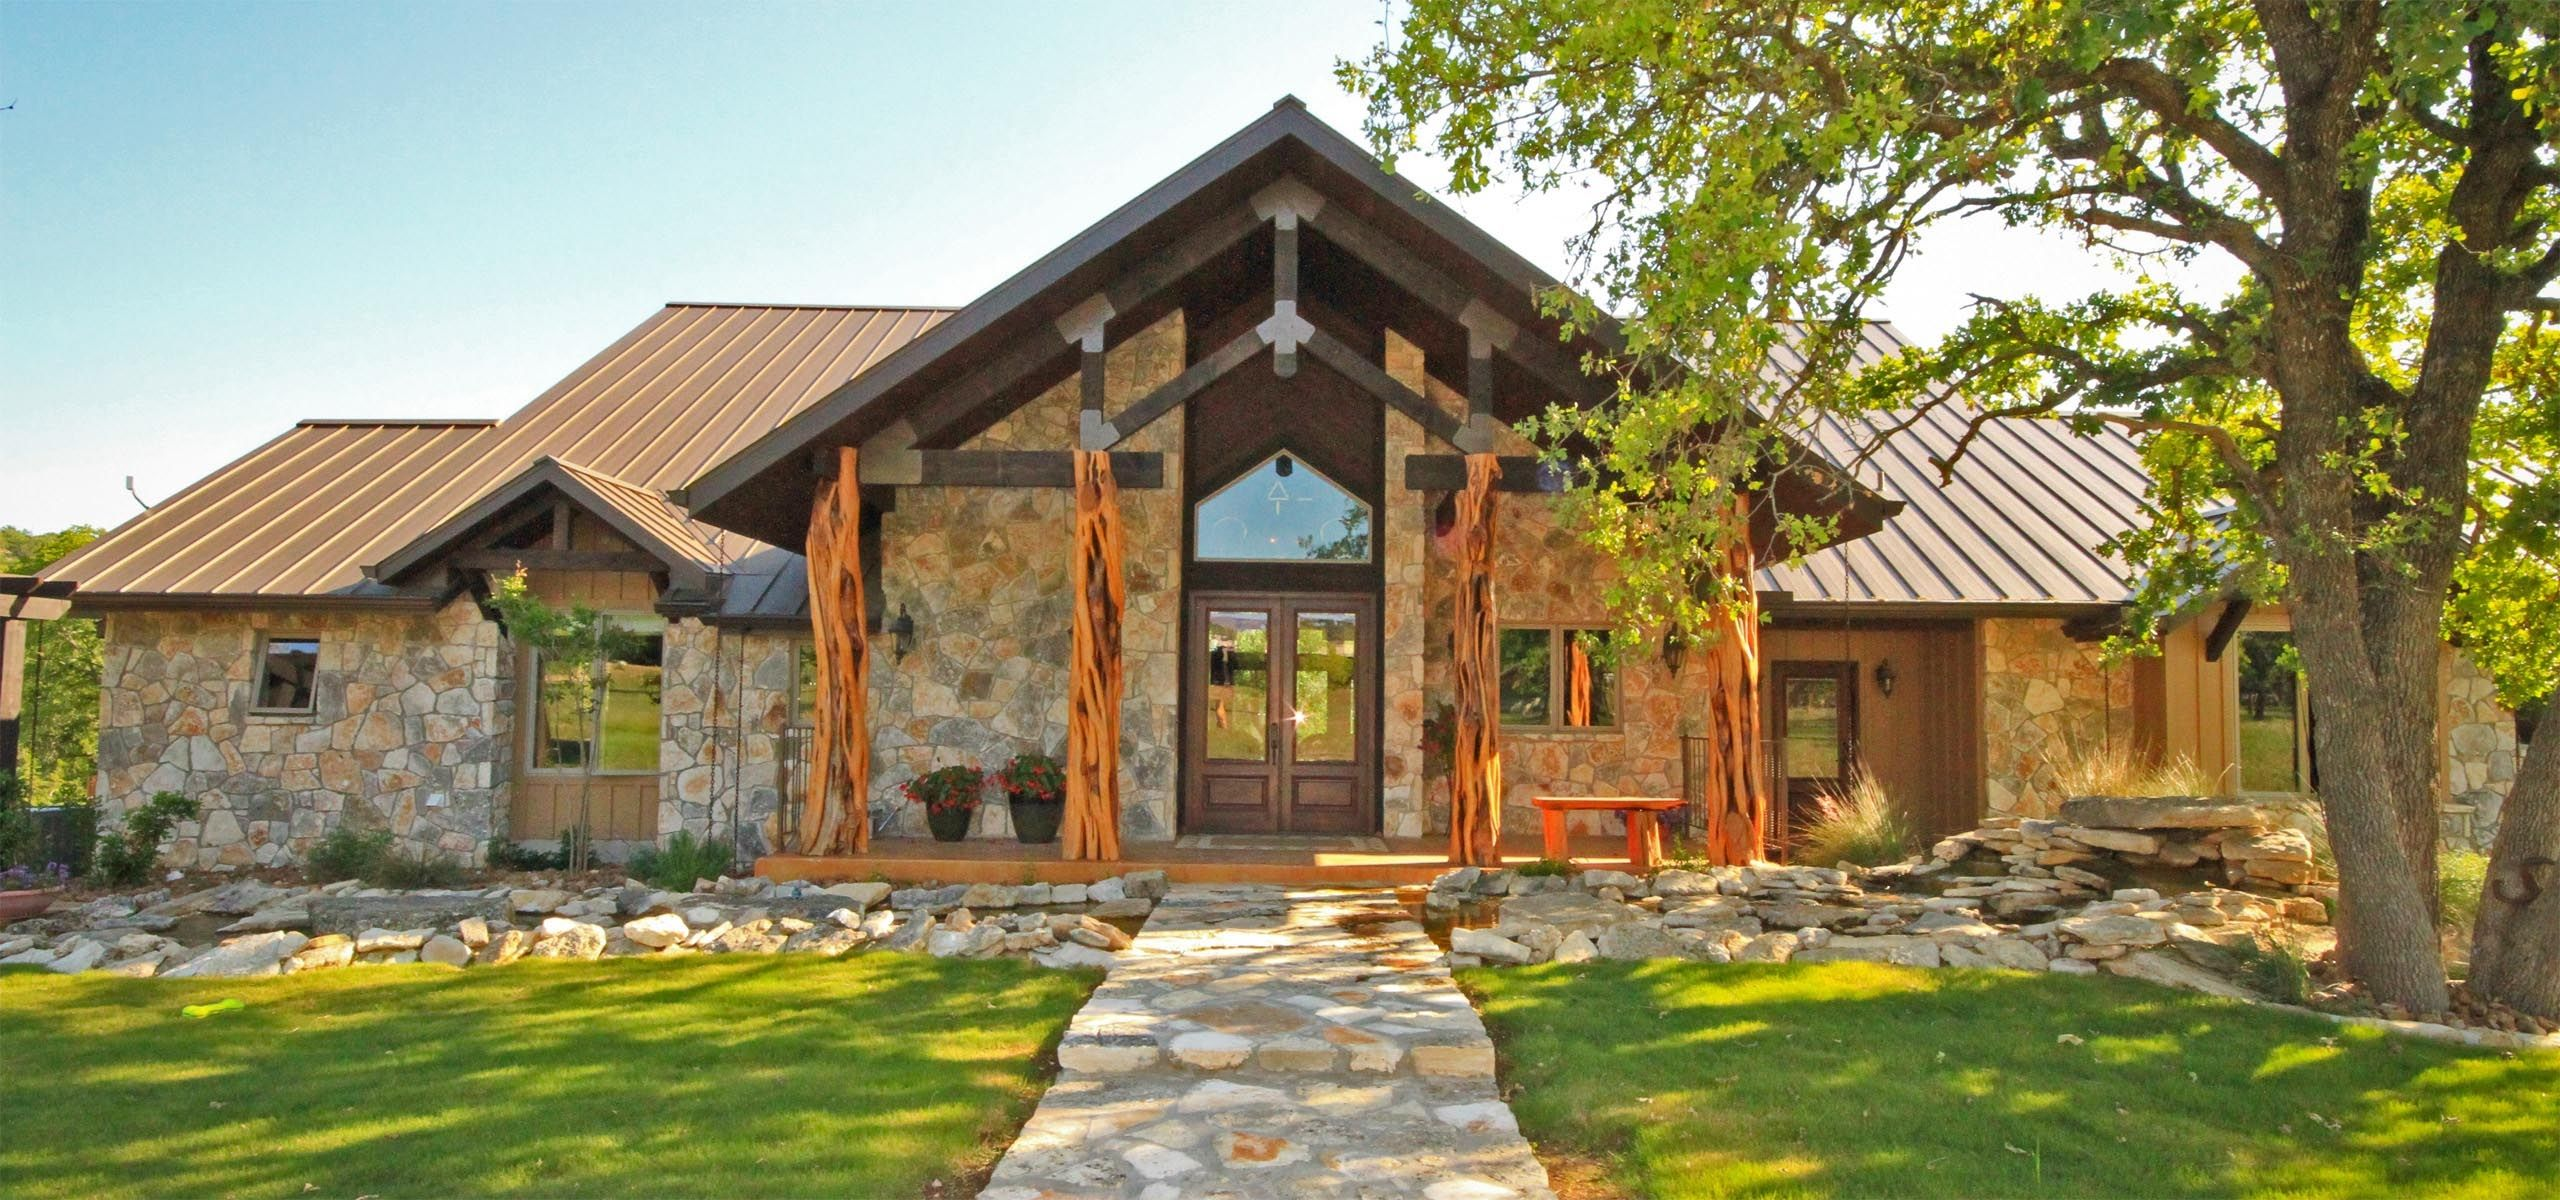 McRae Home | Texas Home Plans | Executive Homes in 2018 | Pinterest on texas building, large open ranch plans, new american home plans, texas gardening, texas gifts, texas small houses, texas painting, texas house designers, texas stone houses, single story brick home plans, texas old ranch houses, texas architectural styles, texas house roof, underground shipping container building plans, texas outdoors, log home plans, texas home, texas insurance, texas design, texas military,